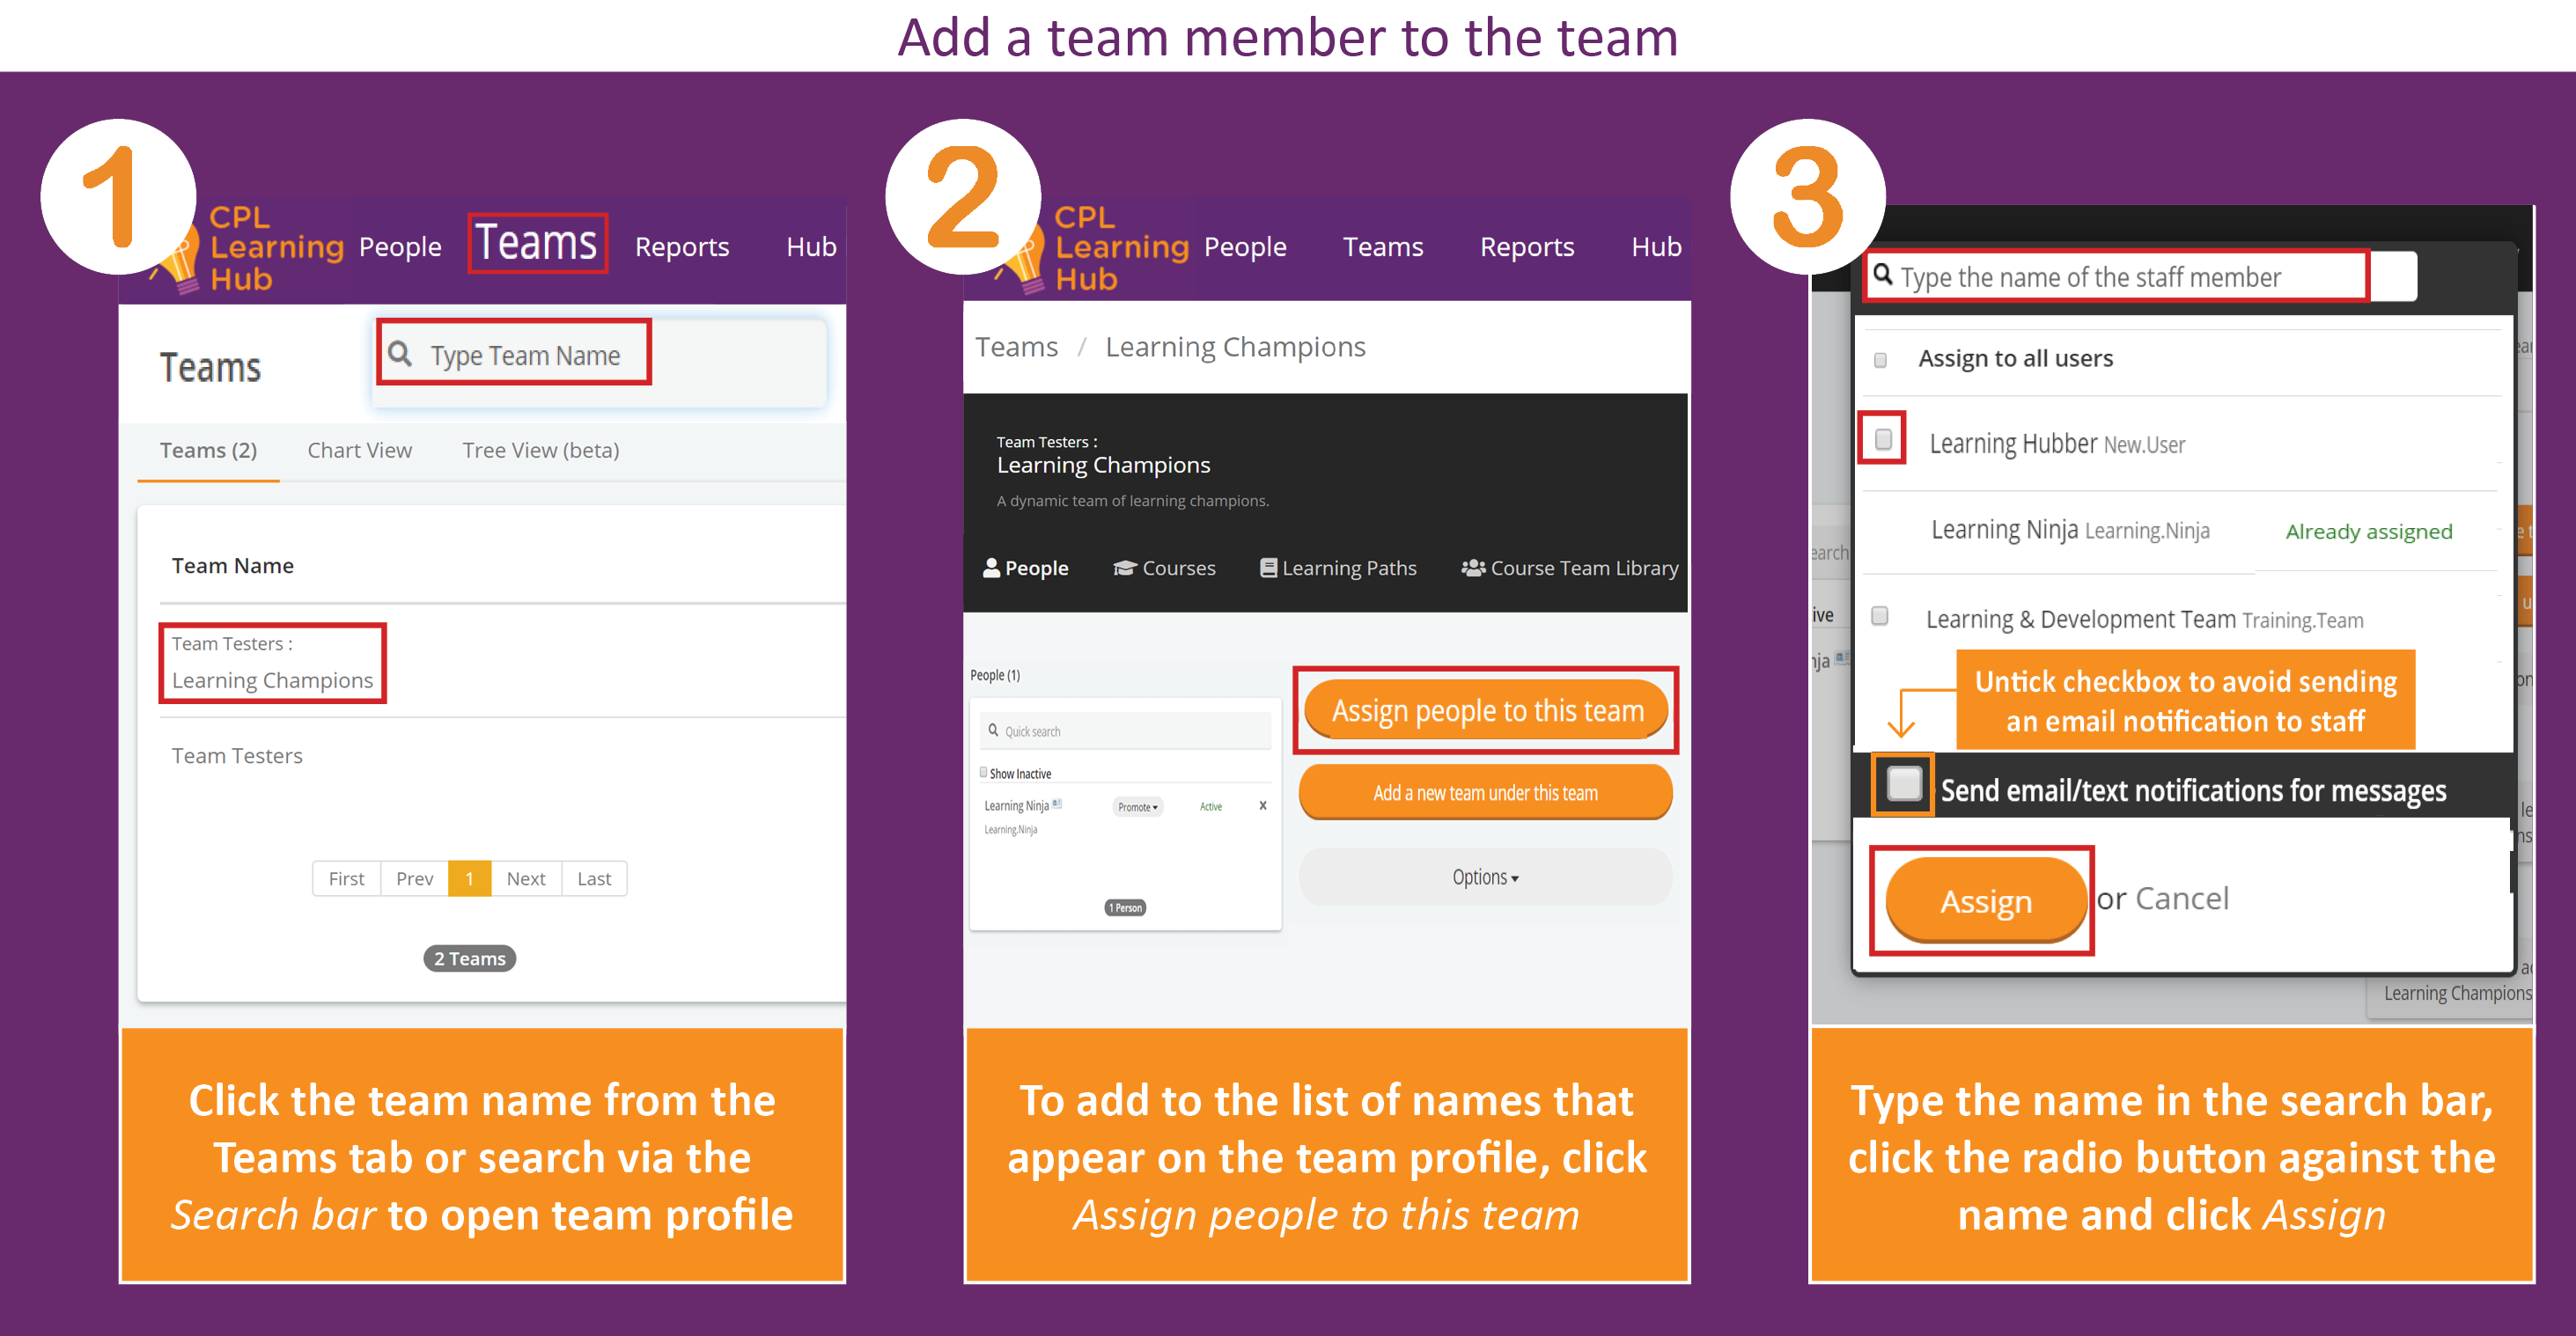 Screenshot displaying instructions for adding a team member